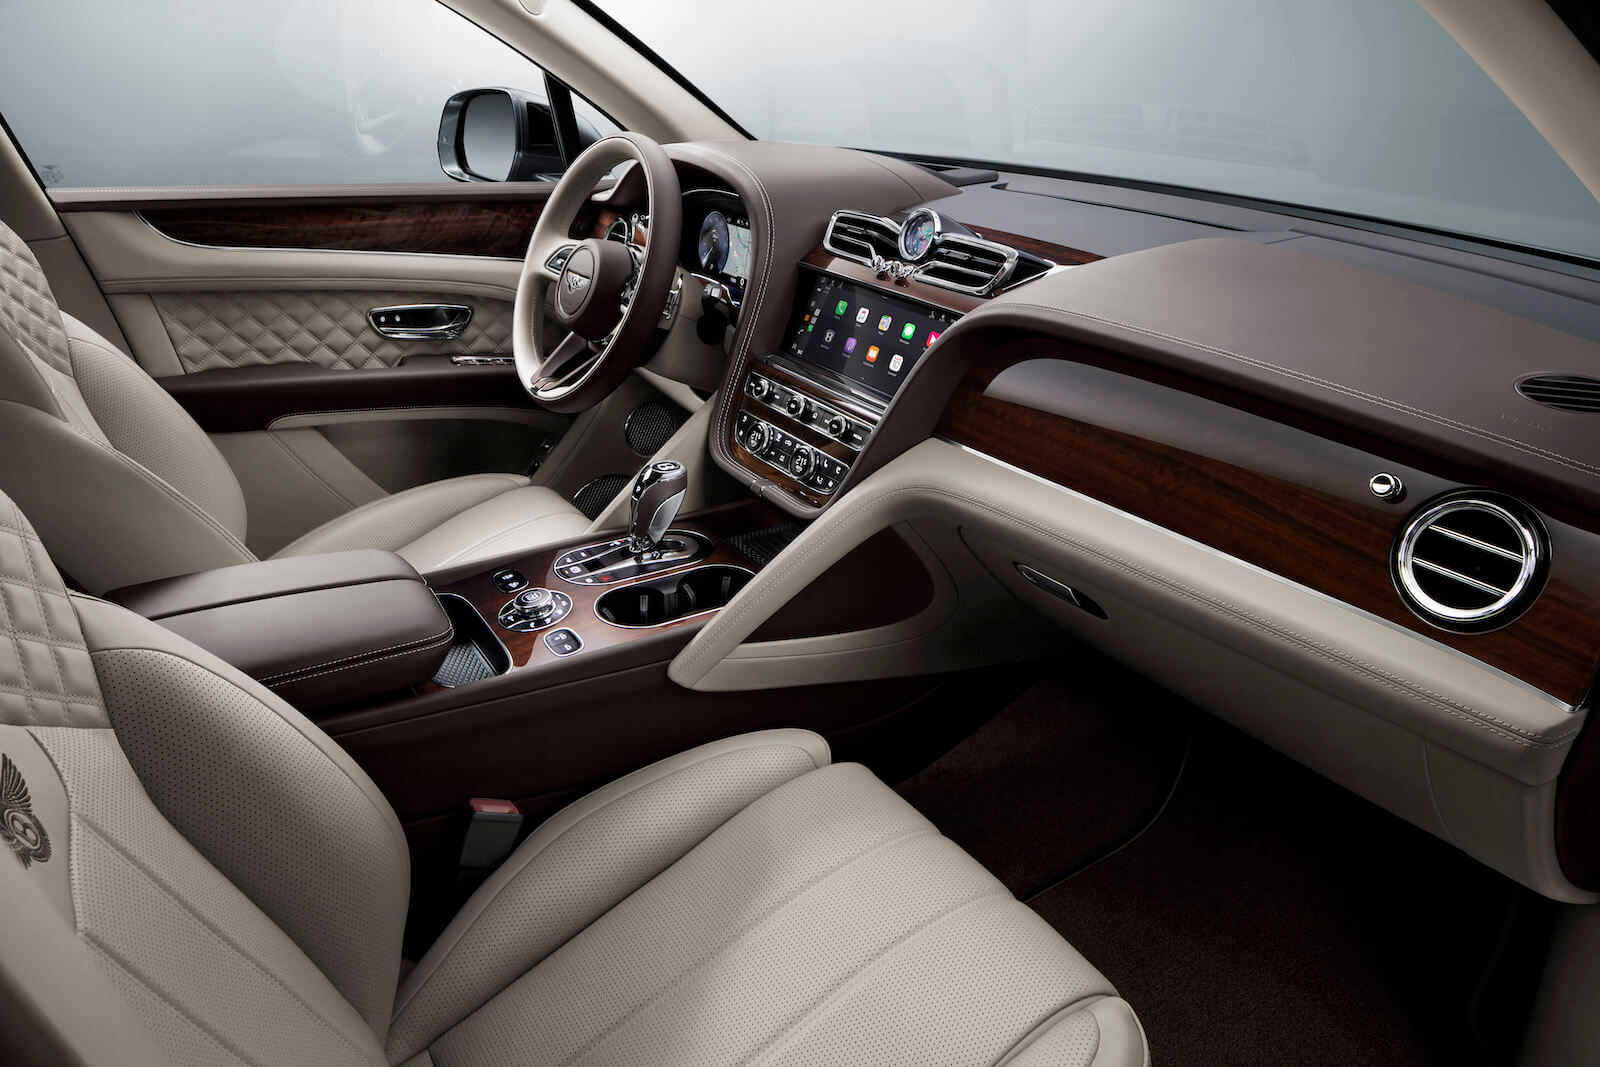 2021 Bentley Bentayga V8 interior